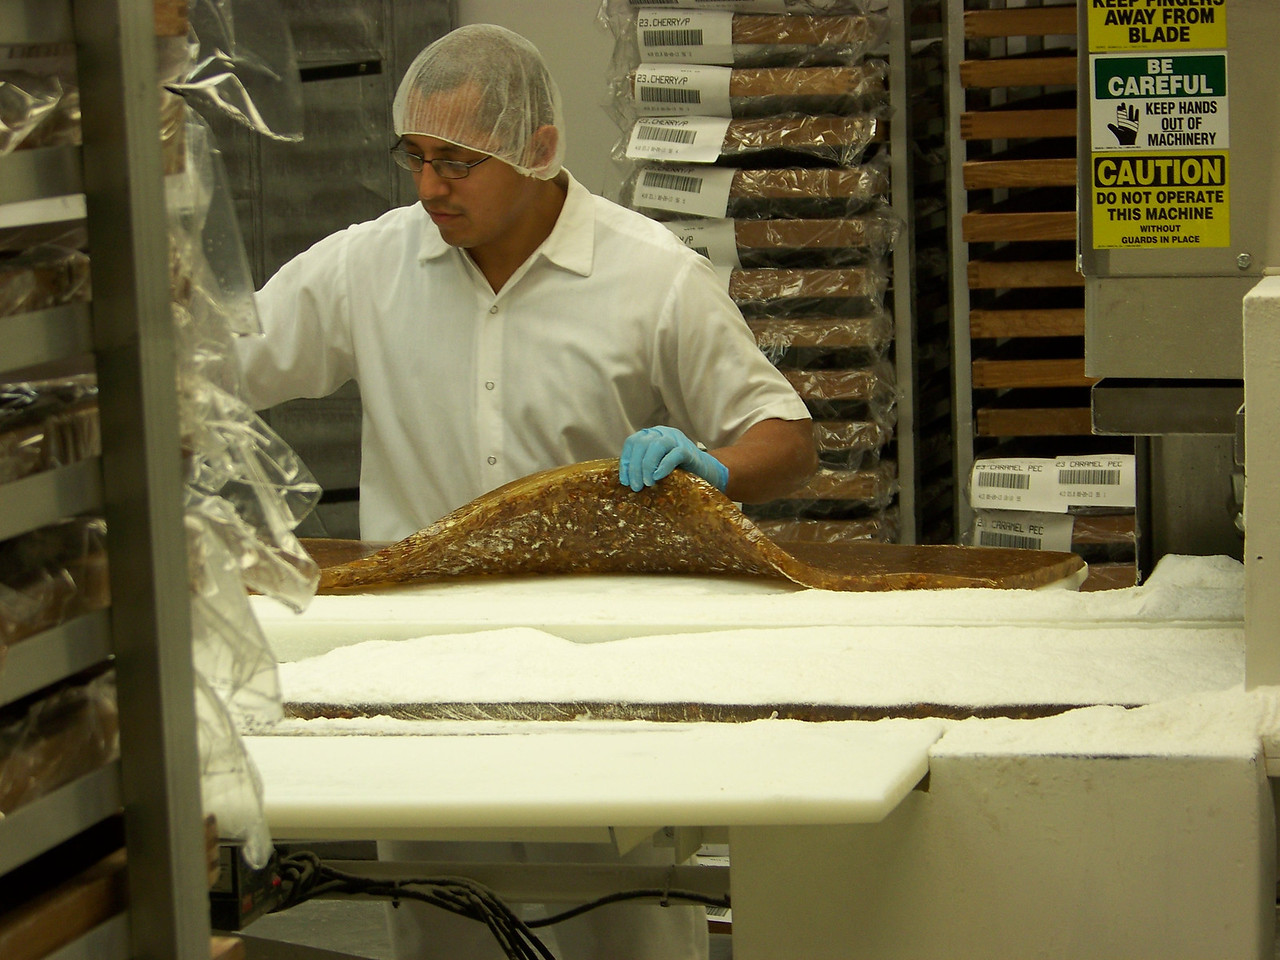 The cooled sheet of fruit and nuts is removed from its tray (seen here) and is then fed through a machine which both cuts the sheet into bite-sized rectangles, and covers the pieces with powdered sugar.<br /> [Cashmere, WA - Aplets & Cotlets factory tour]